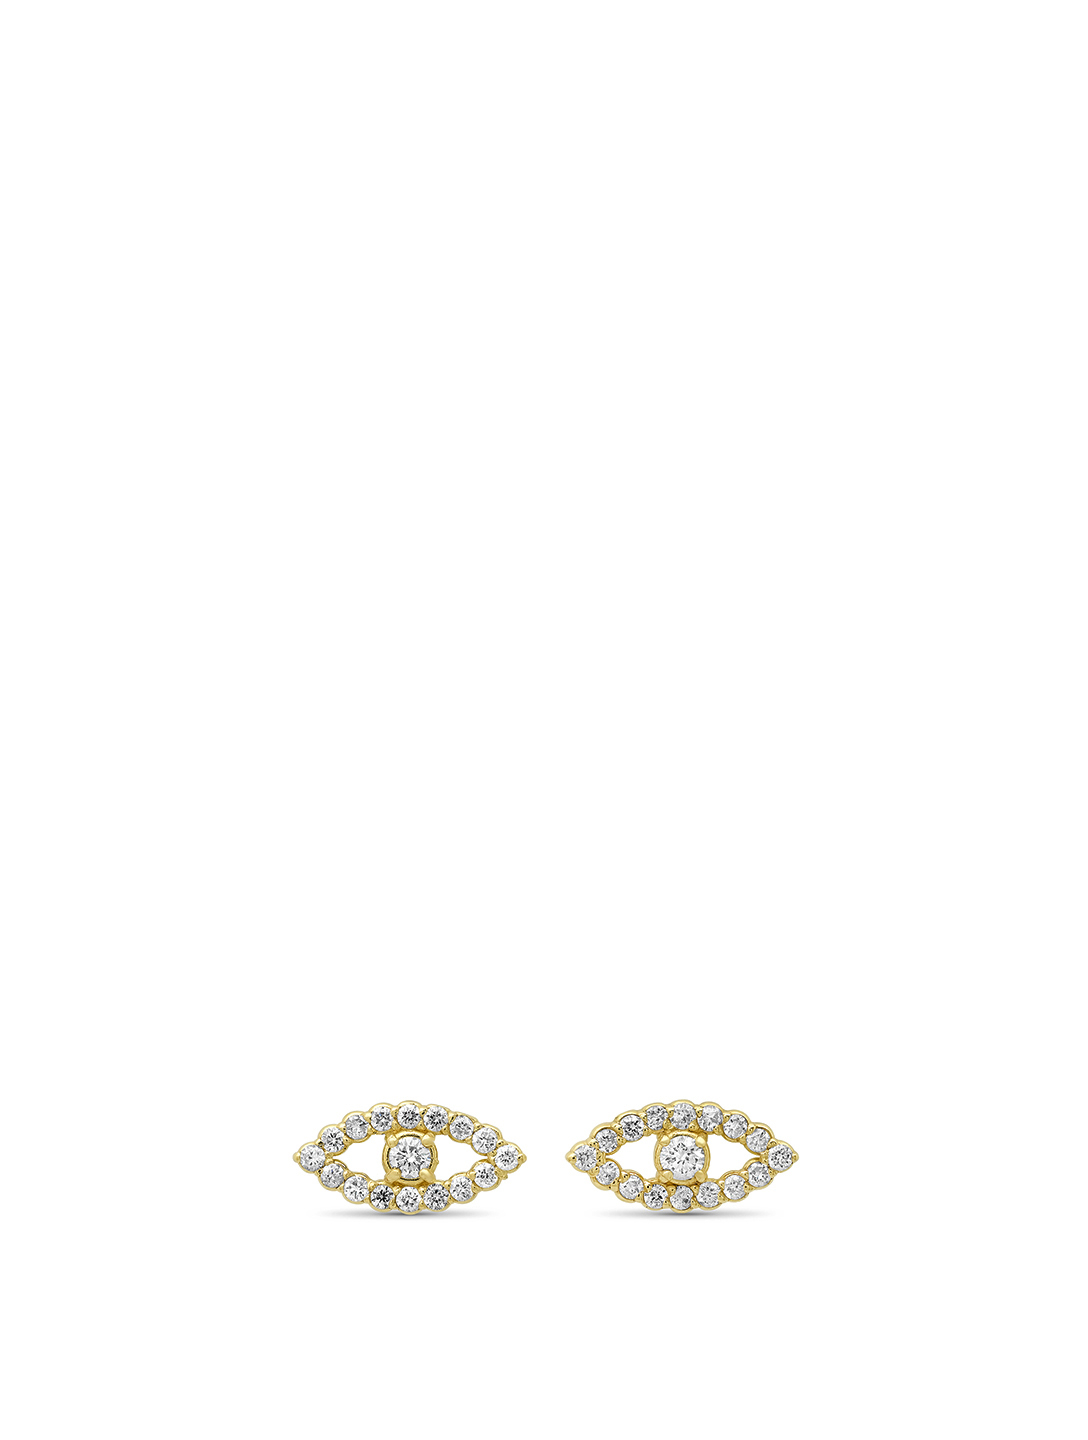 JENNIFER MEYER Mini 18K Gold Open Evil Eye Stud Earrings With Diamonds Women's Metallic